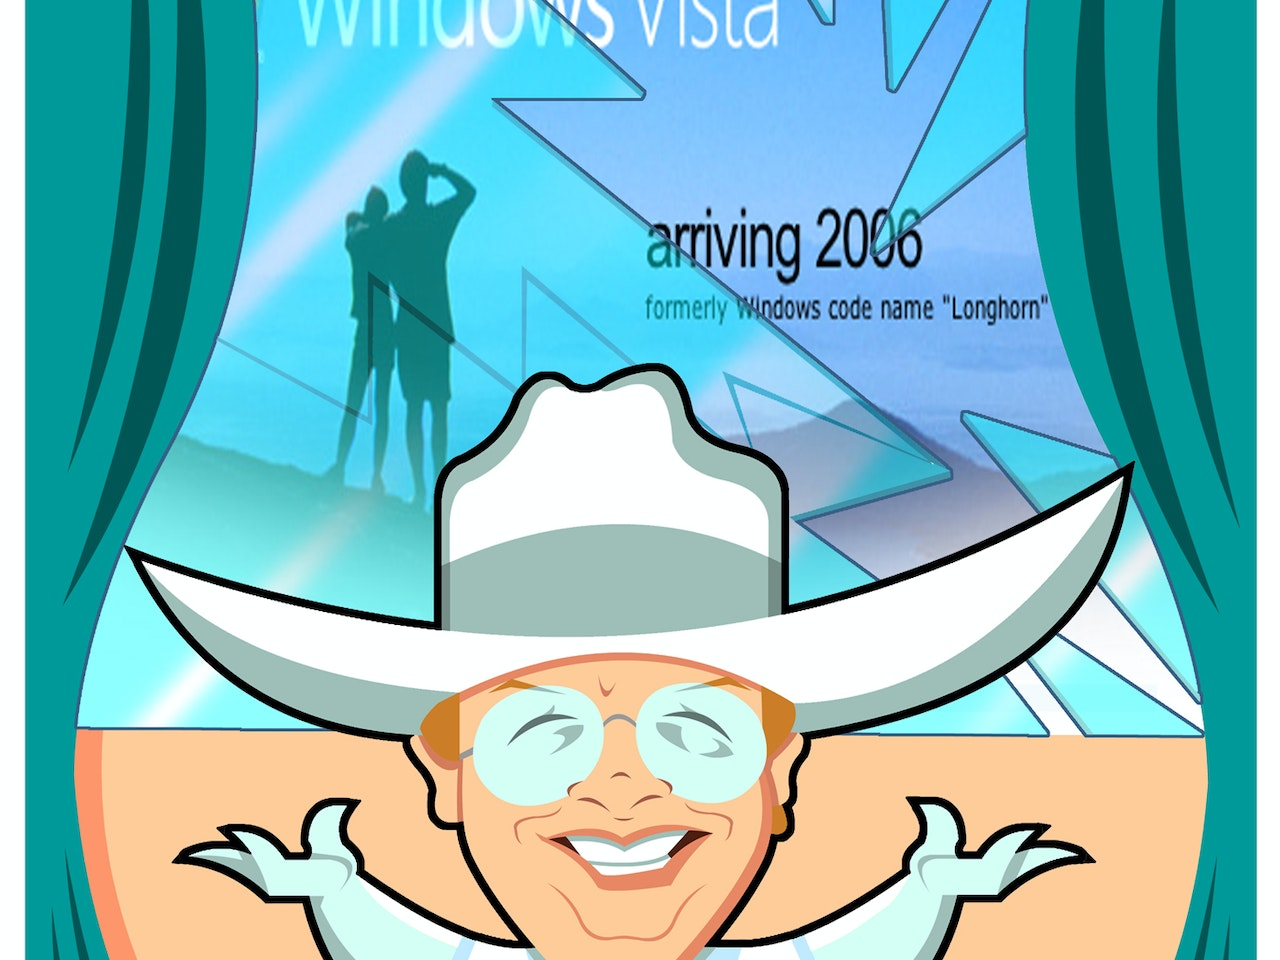 funny happy humorous comical colourful graphic cartoon cowboy